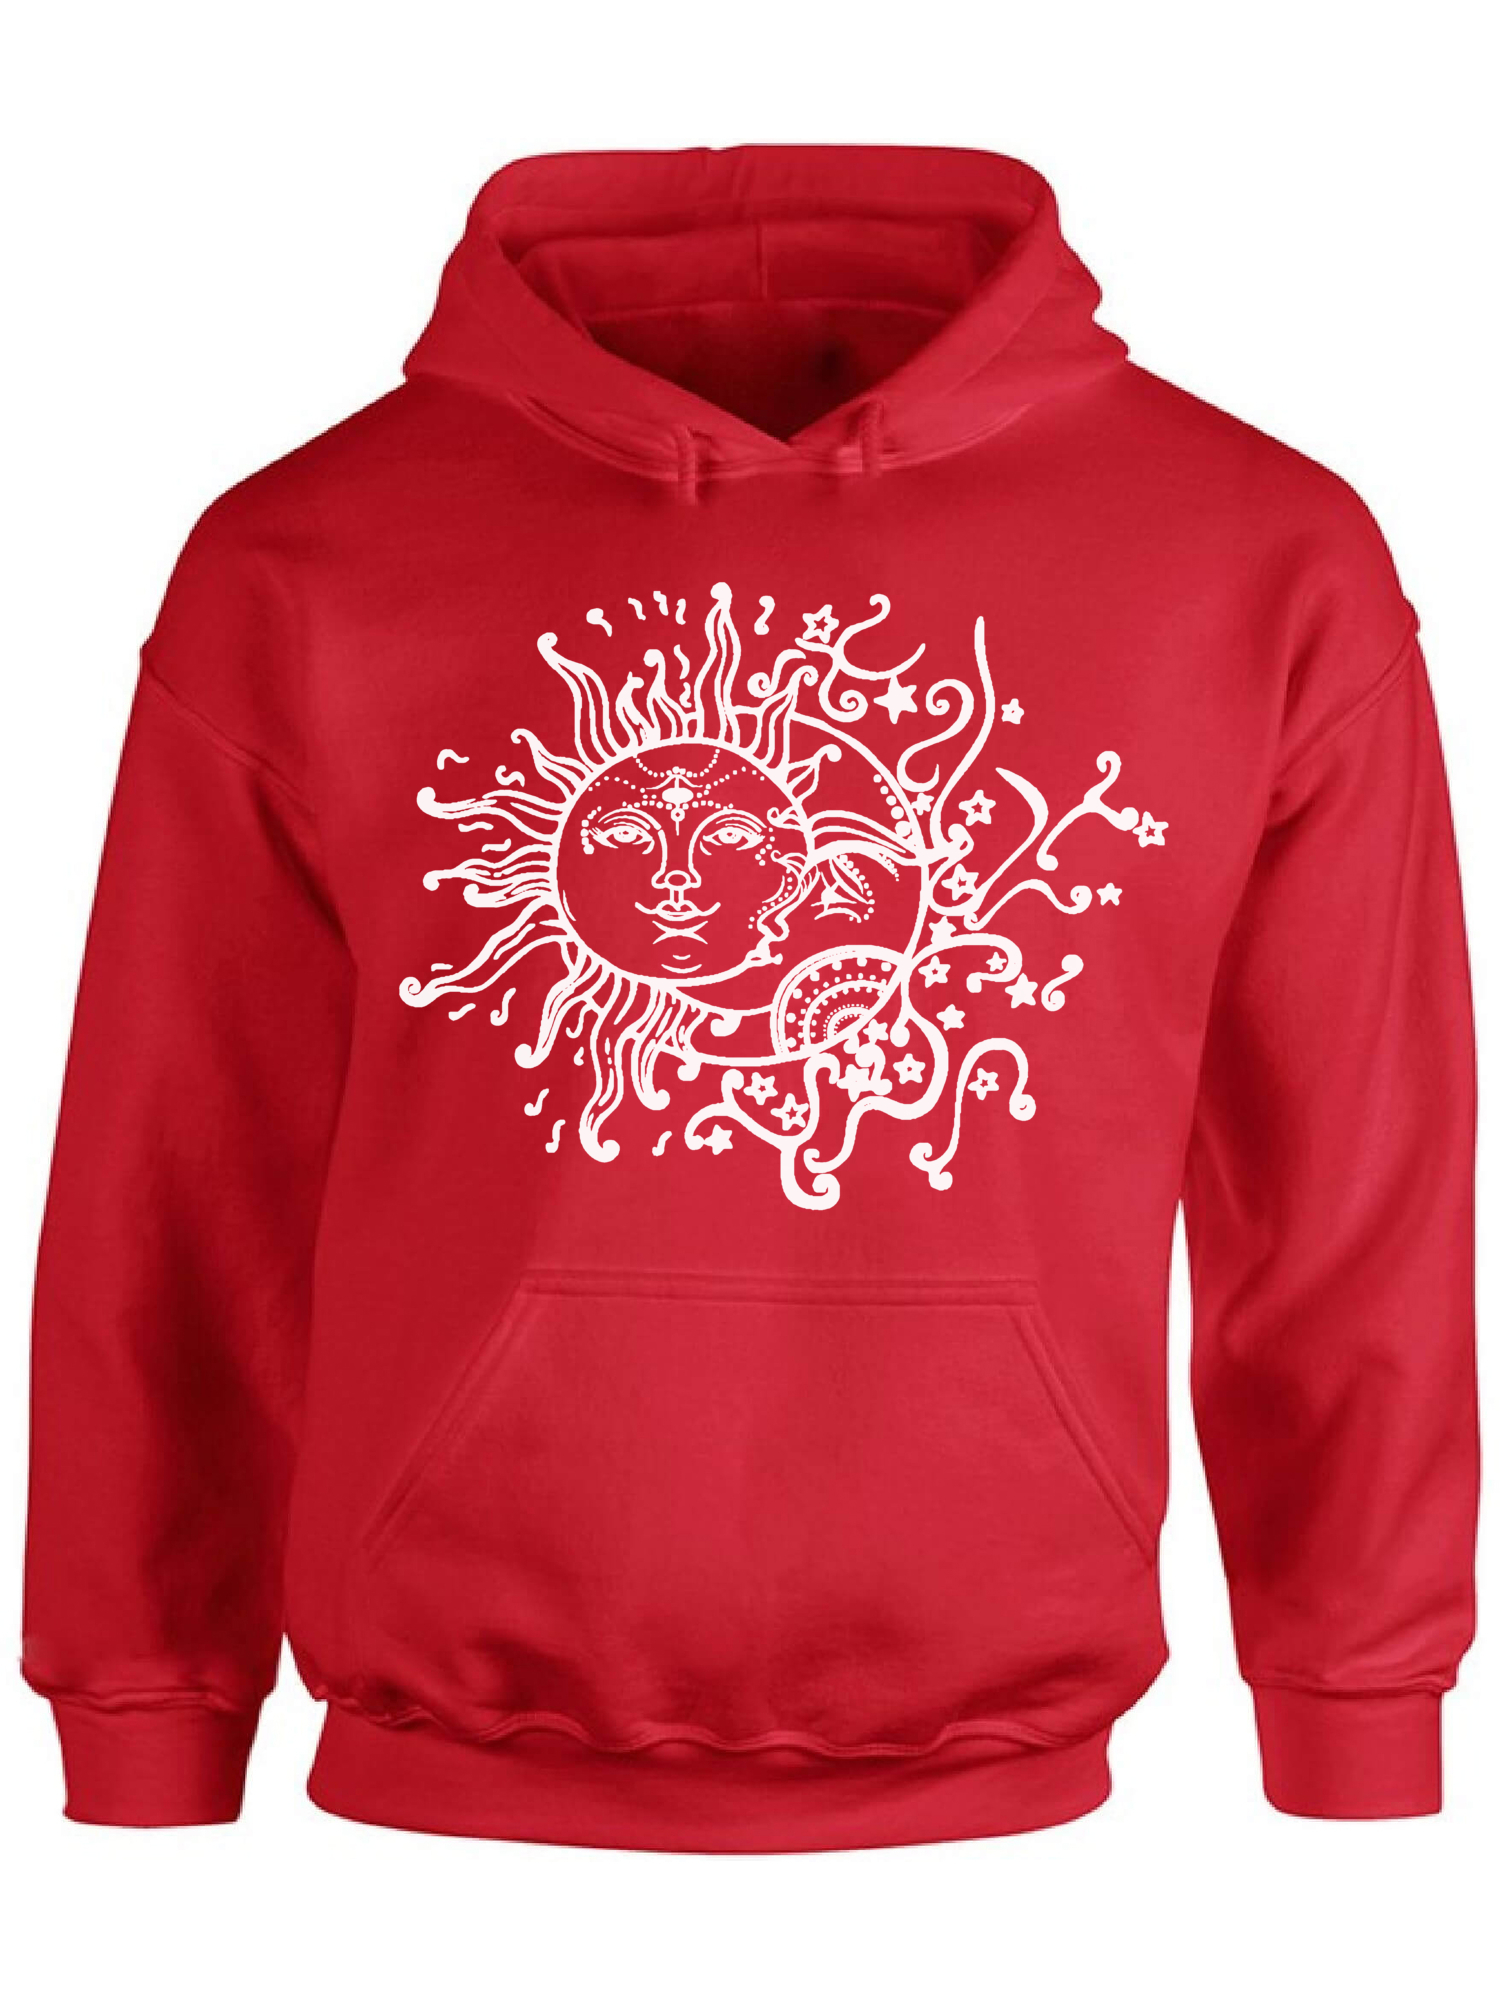 Sun and MoonUnisex 3D Printed Sweatshirt Casual Pullover Hoodie With Big Pockets